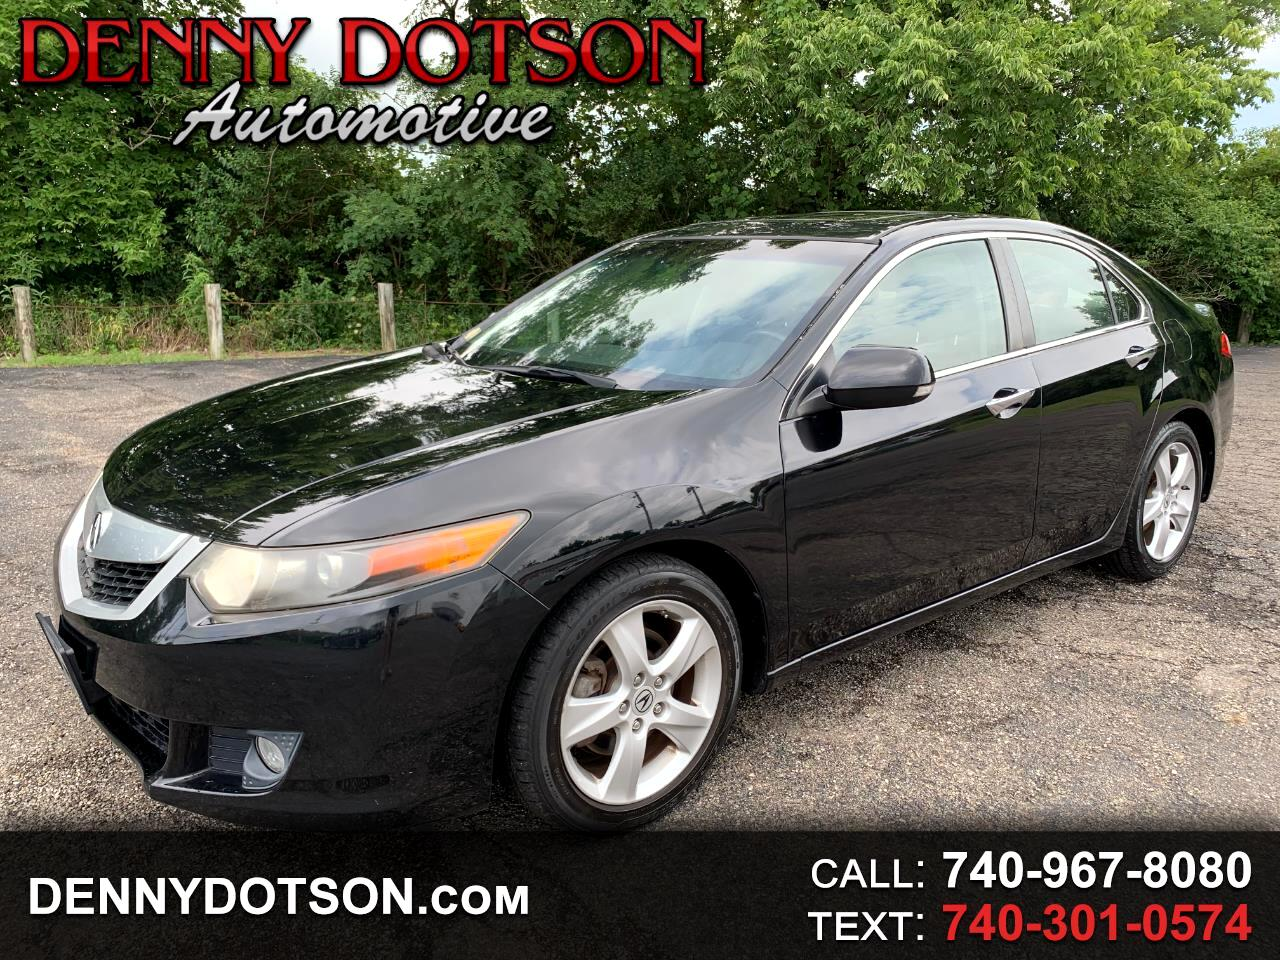 Acura TSX 4dr Sdn Man 2009